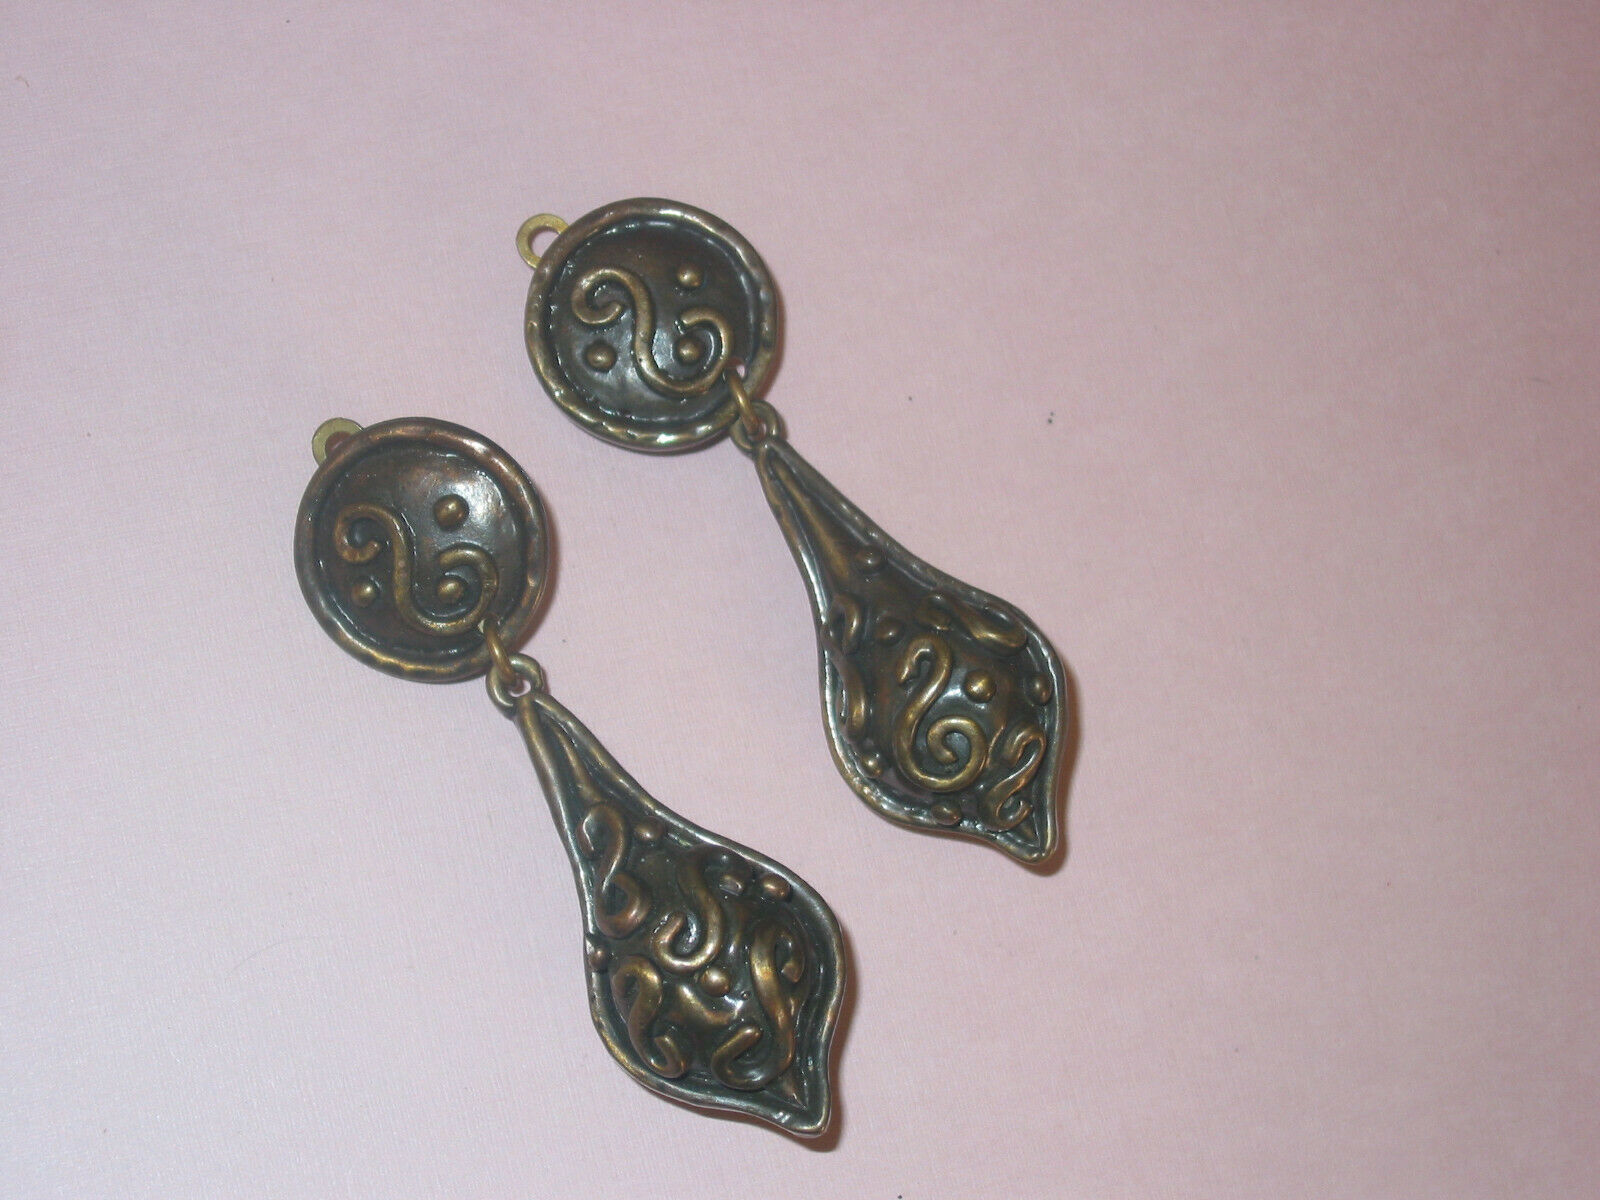 Huge Sterling Silver Lizard Earrings Hand Hammered /& Scaled with Dangle Hooks 1980s